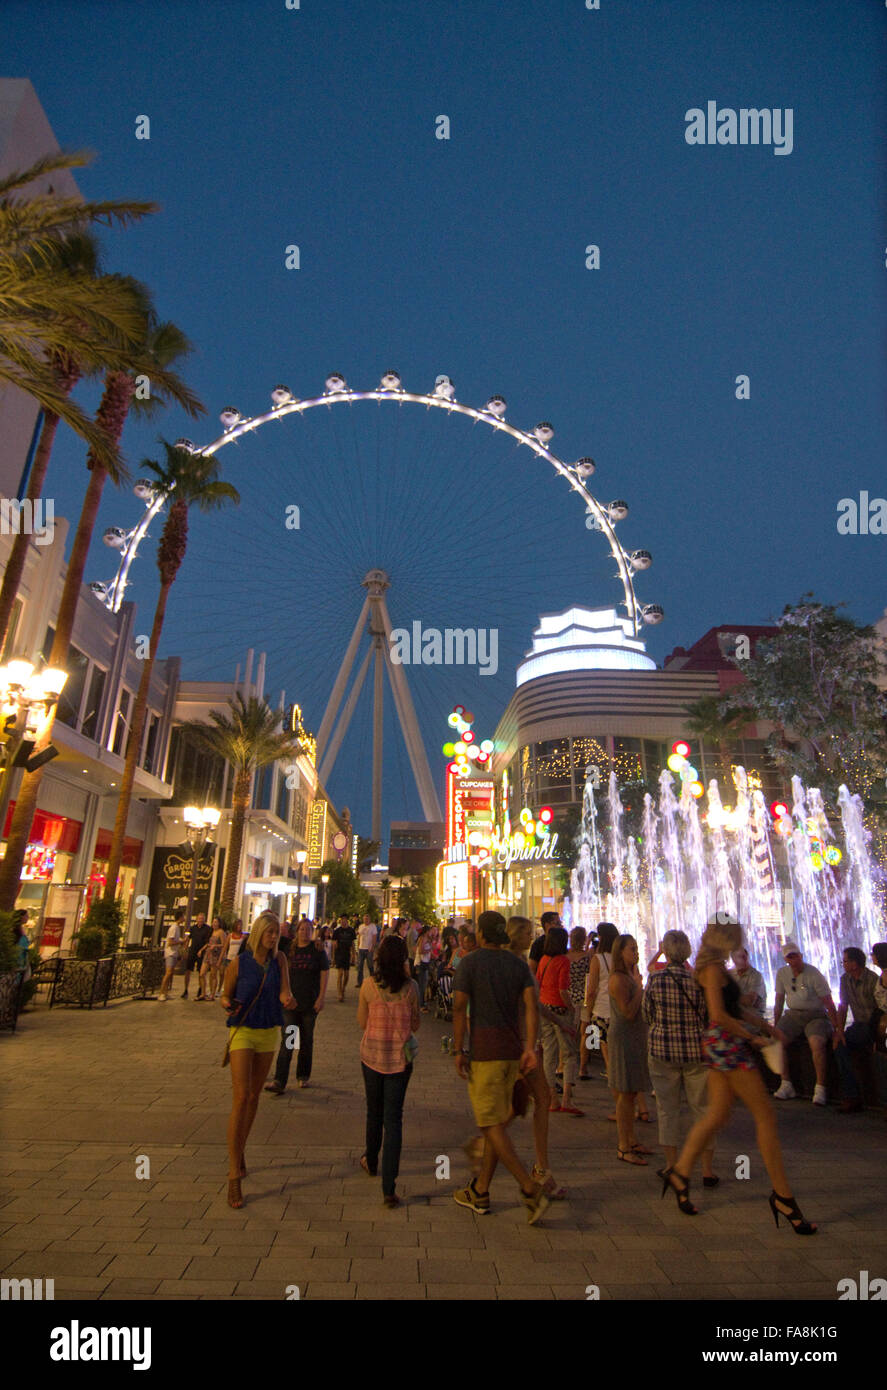 Las Vegas, Nevada, the High Roller at the Linq Hotel and Casino on the strip - Stock Image